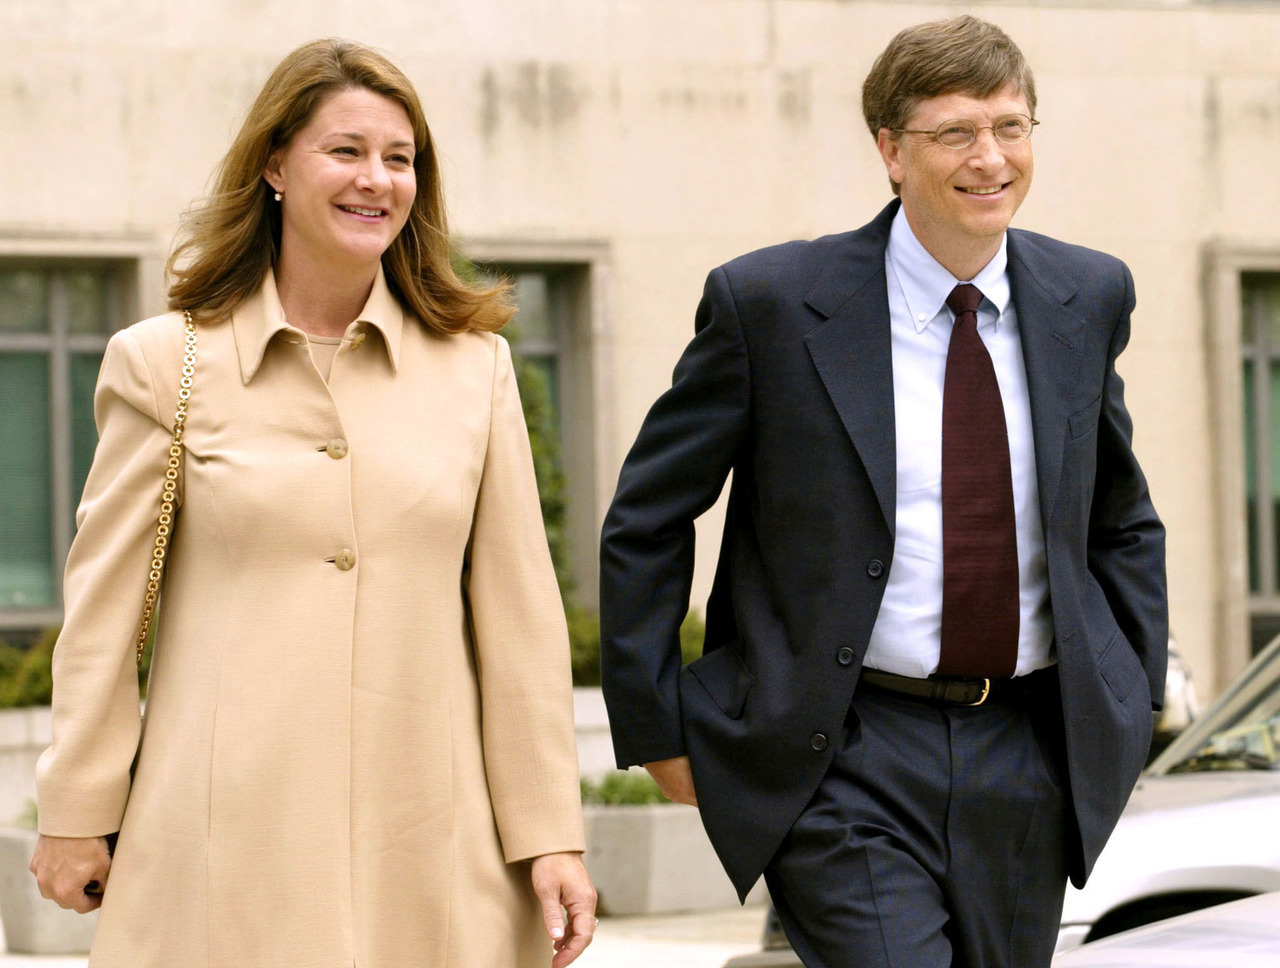 "The Bill and Melinda Gates Foundation is set to unveil funding a sum in the hundreds of millions of dollars for a campaign to improve access to contraception in the developing world. The exact amount will be announced at a summit of world leaders and aid organizations in London on Wednesday, but in an interview with Reuters, Melinda Gates said the commitment would be ""on a par"" with the foundation's other big programs, like that against malaria, AIDS and tuberculosis. In January, the foundation pledged a further $750 million for that fight on top of $650 million contributed since the fund was set up 10 years ago. READ ON: Gates Foundation to pledge funds for contraception"